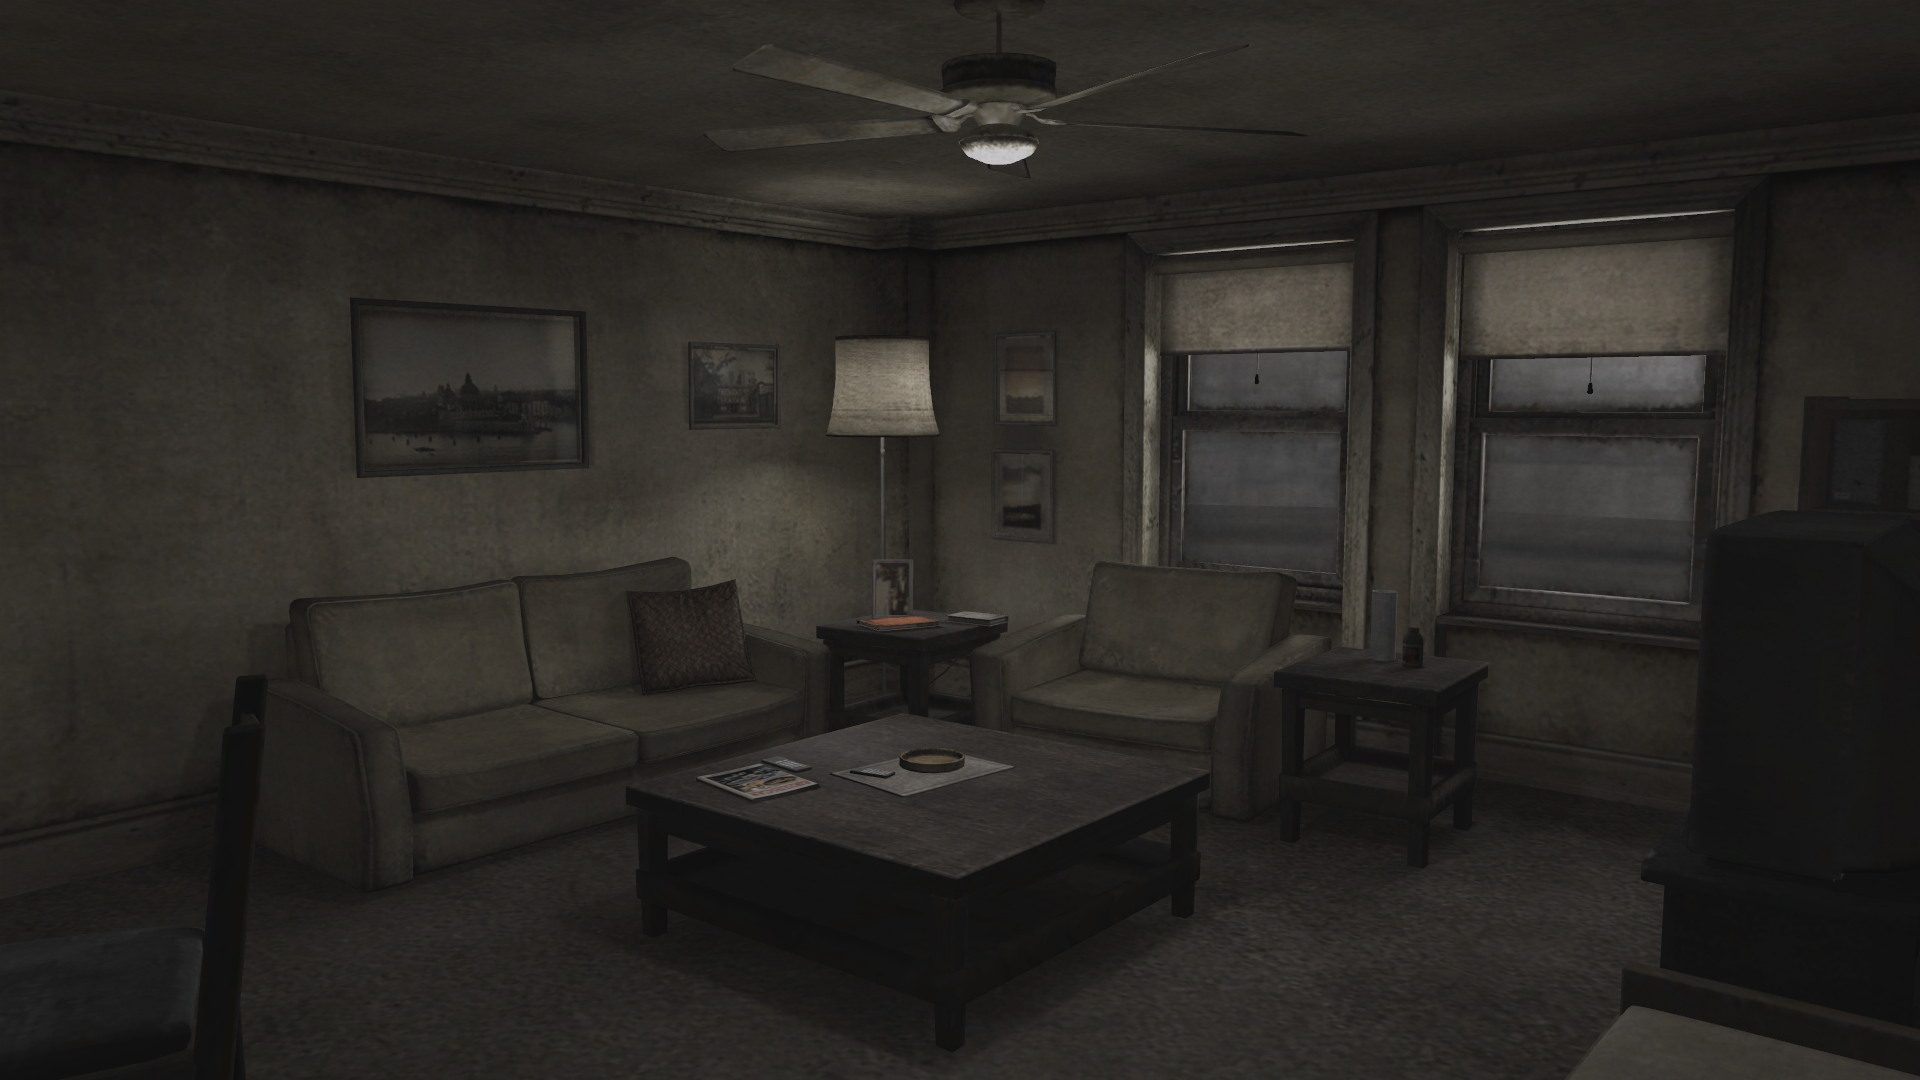 Silent Hill 4 The Room It S Terrible That Poor Little Boy